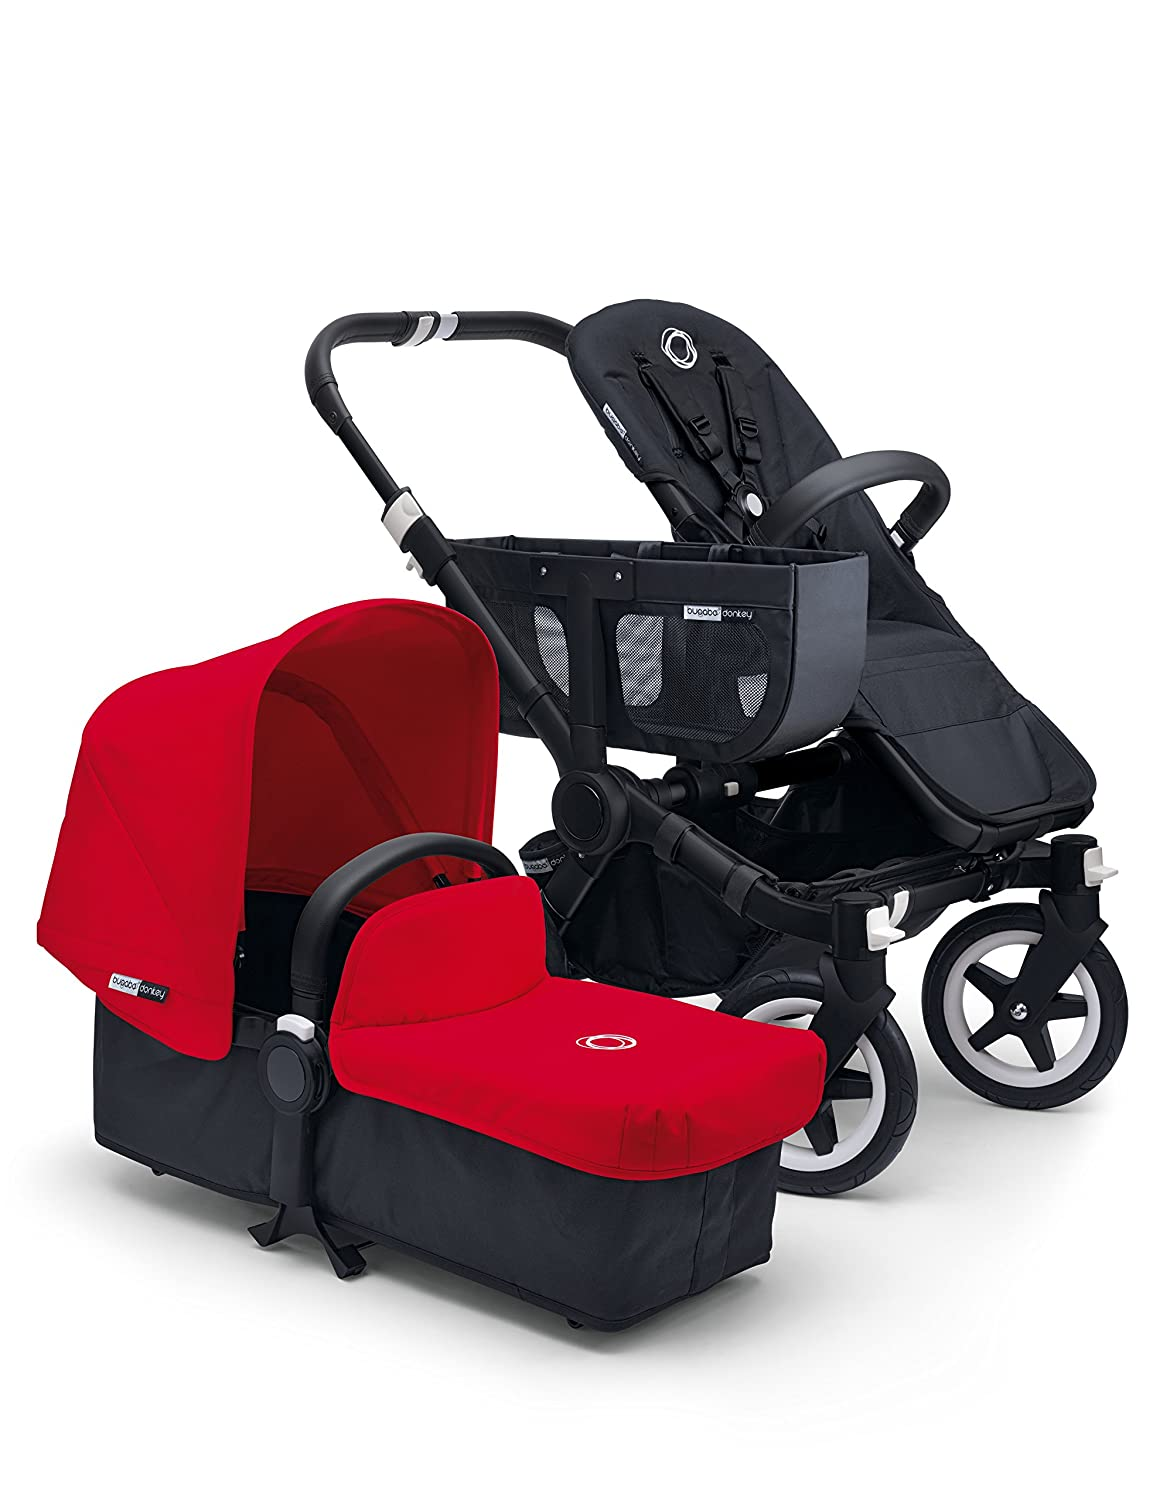 Bugaboo – Case Pack Additional Donkey (Sunroof Extensible) Red 180111RD02